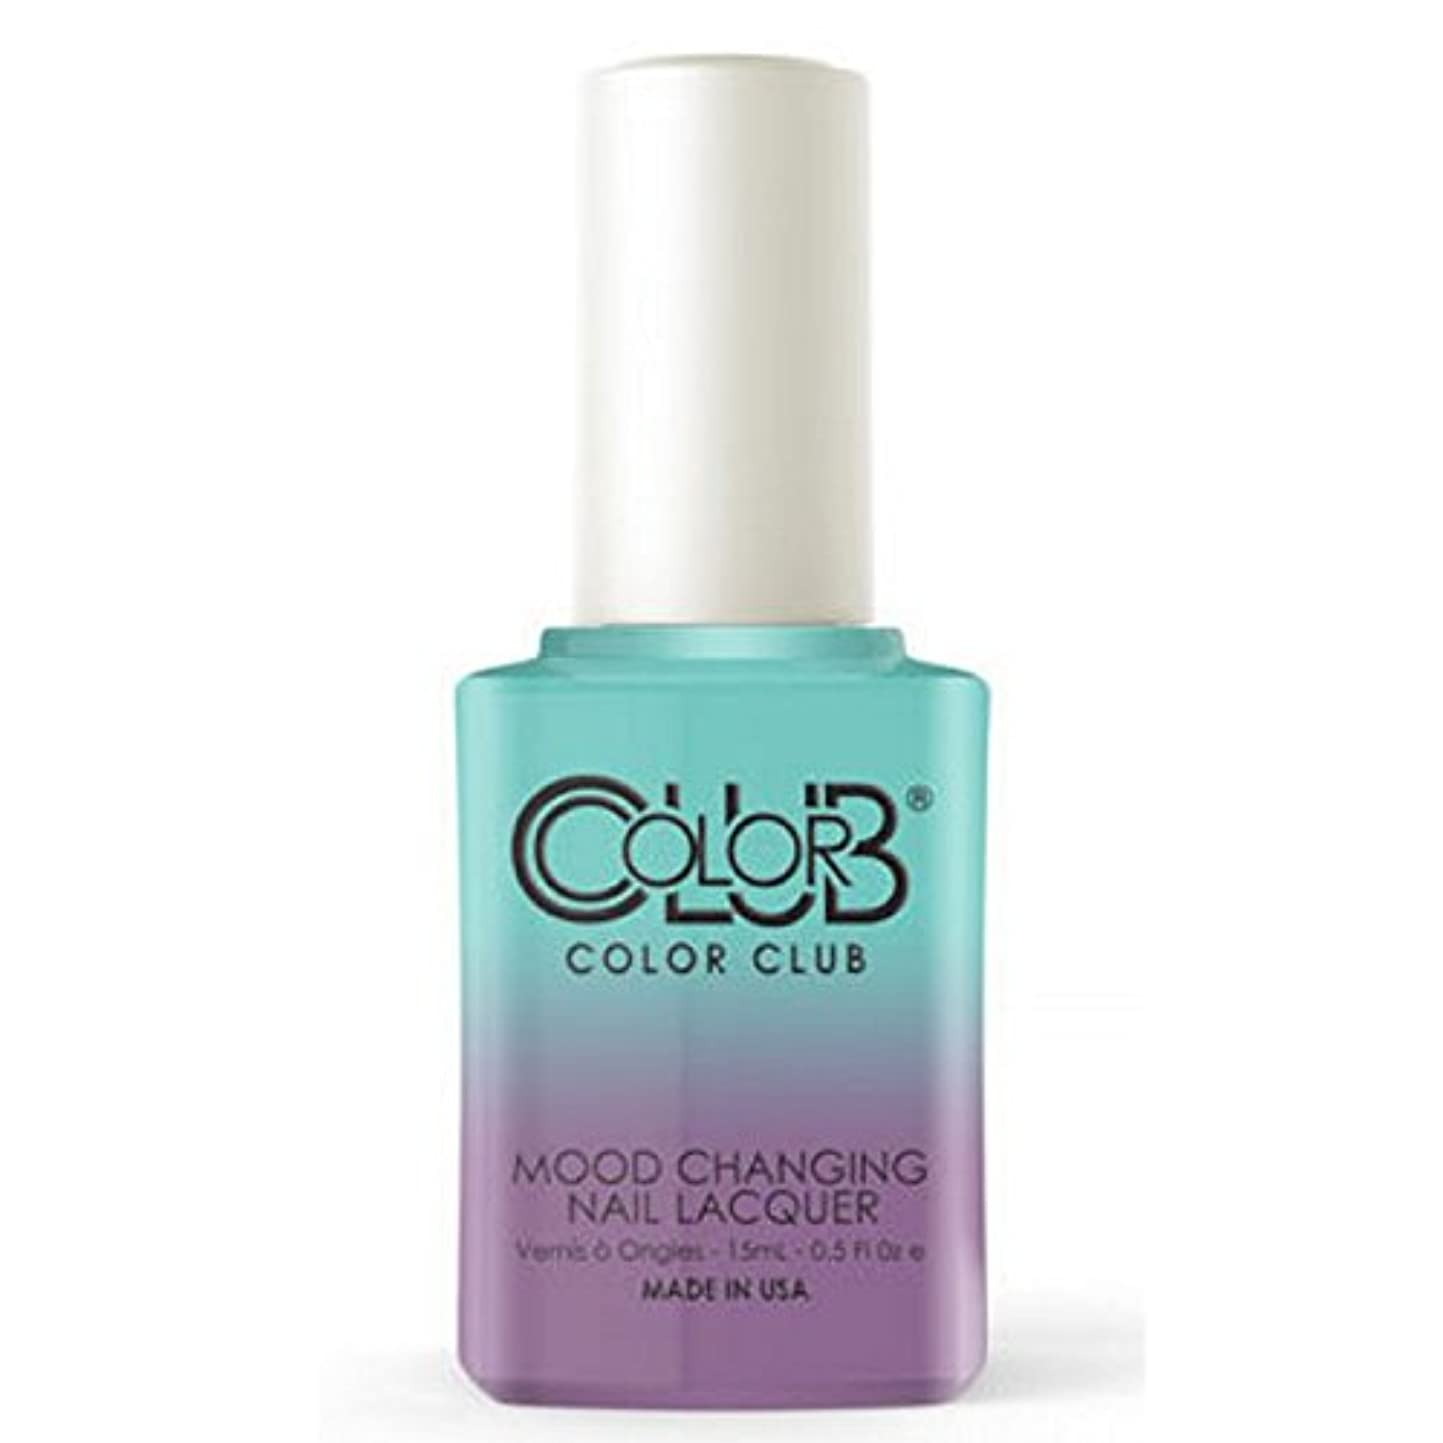 復活させる宇宙のクリアColor Club Mood Changing Nail Lacquer - Serene Green - 15 mL / 0.5 fl oz